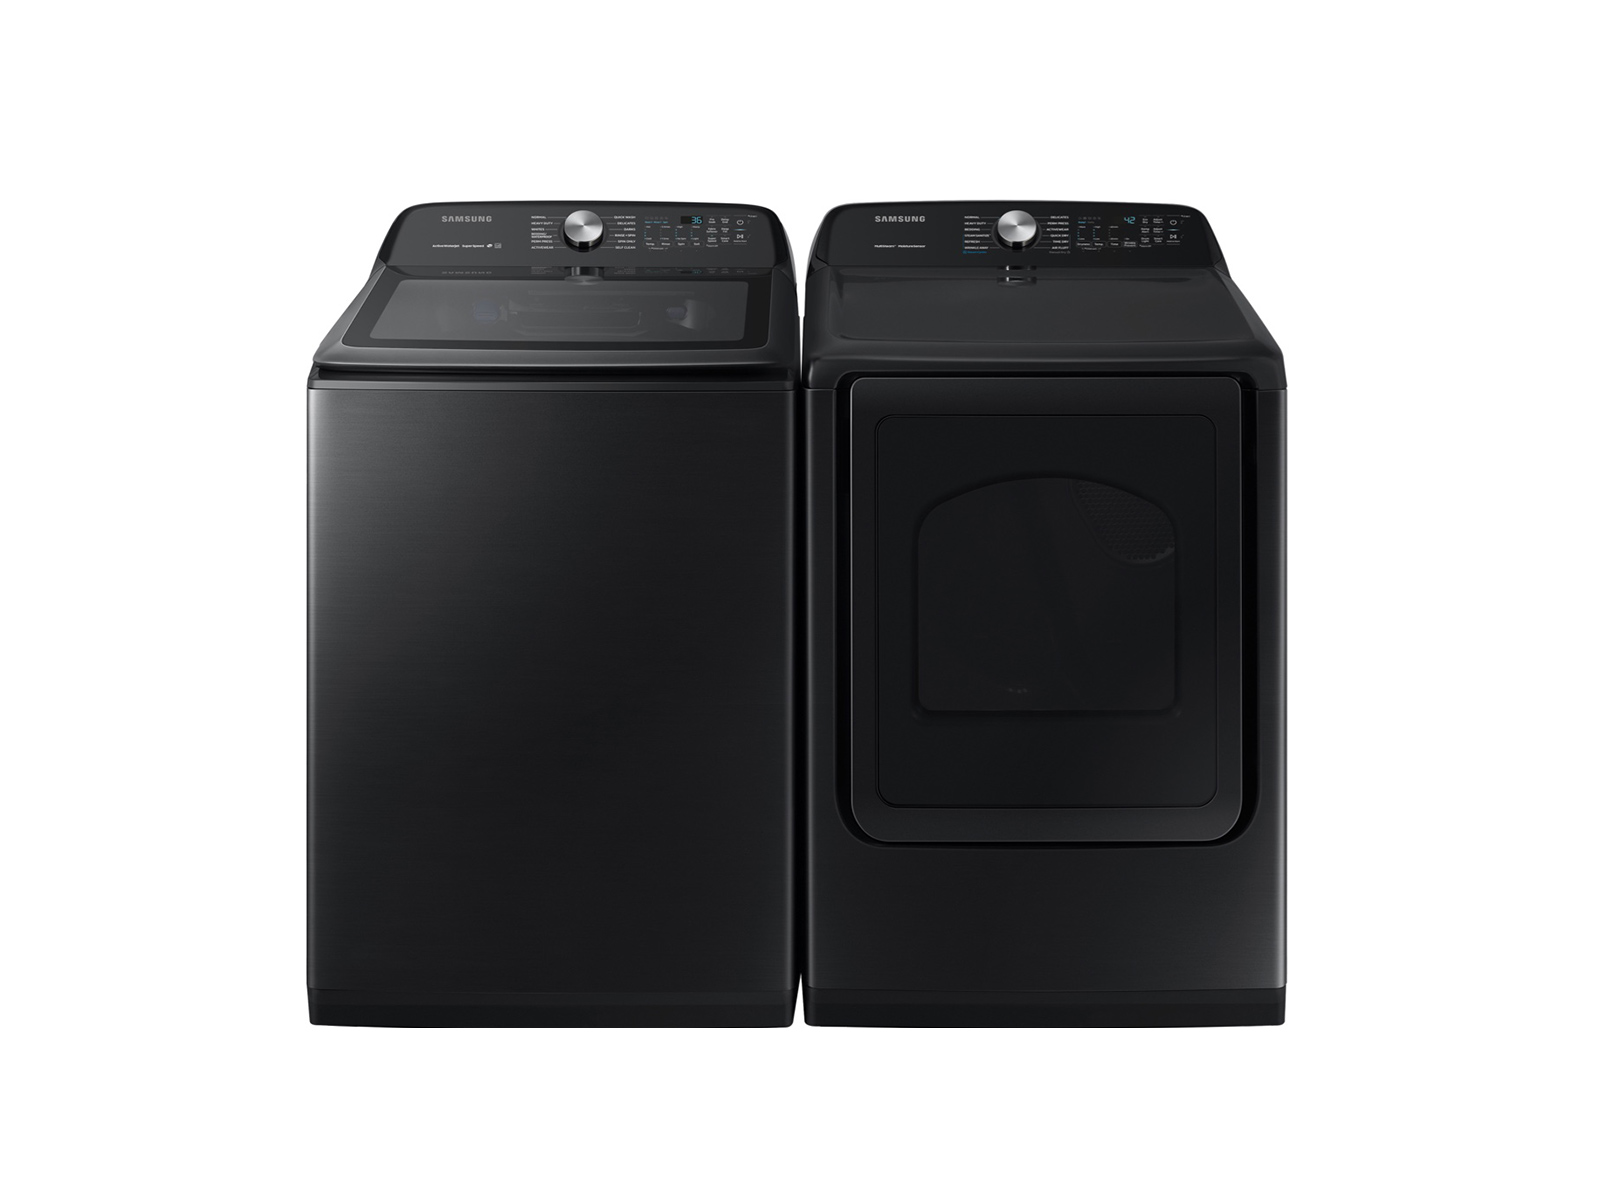 Samsung Top Load Washer & Dryer set with Super Speed and Steam Sanitize+ in Black Stainless Steel, Fingerprint Black Resistant Stainless Steel -